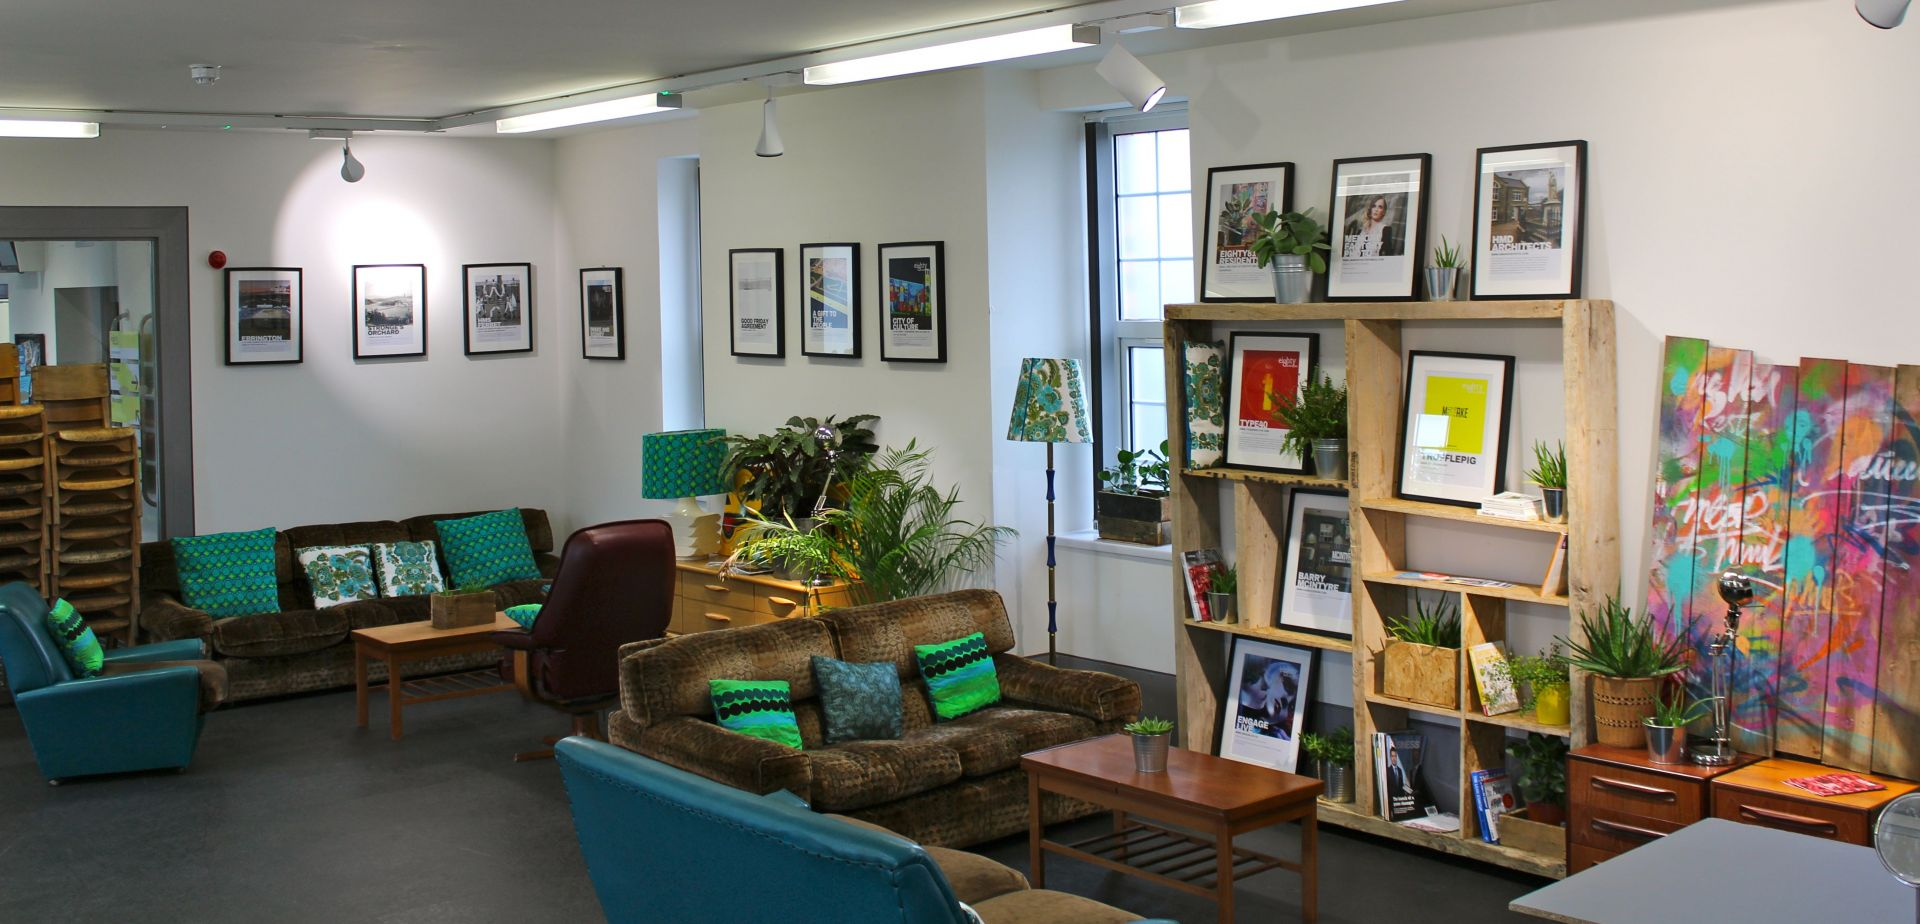 Eighty81 Creative Workspace, Londonderry